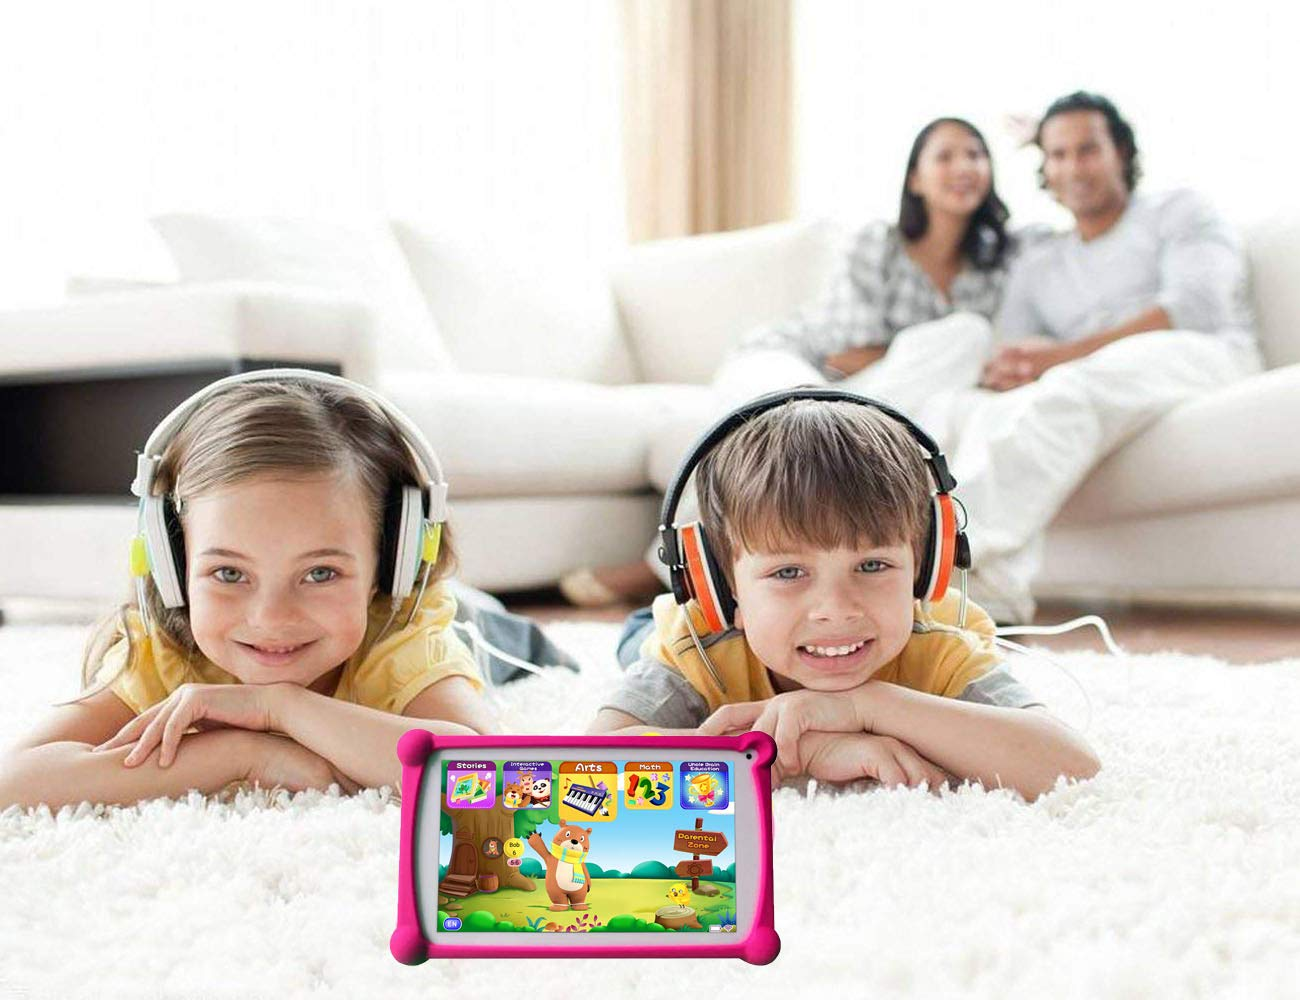 Kids Tablet, B.B.PAW 7 inch 1G+8G Android Tablet with Additional 120+ English Preloaded Apps-Candy Pink by B.B.PAW  (Image #6)